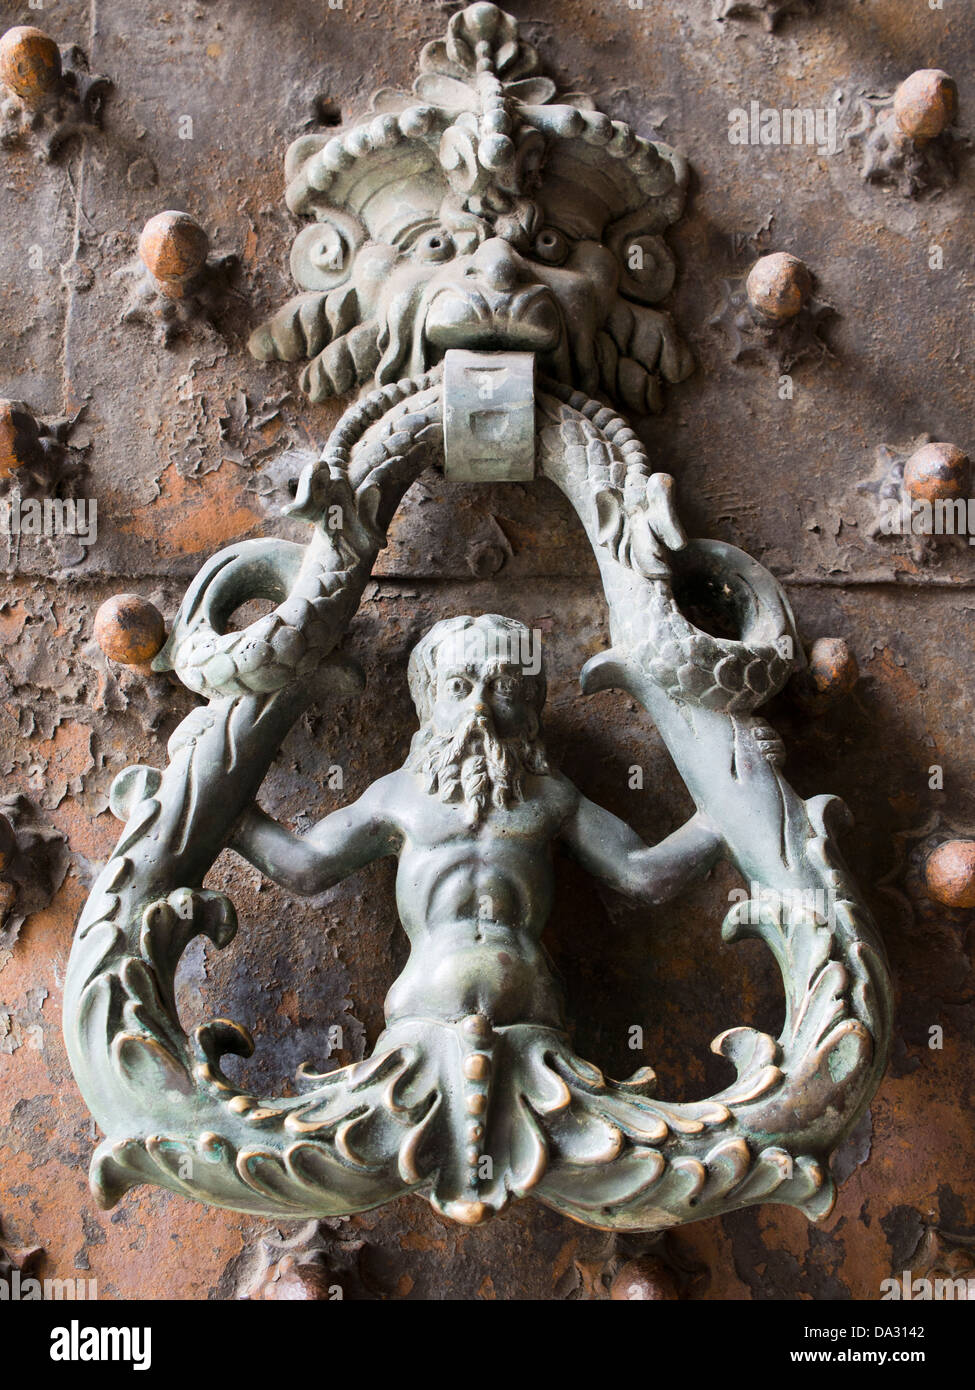 Elaborate door and knocker to the Palazzo Ducale in Genoa, Italy 3 - Stock Image